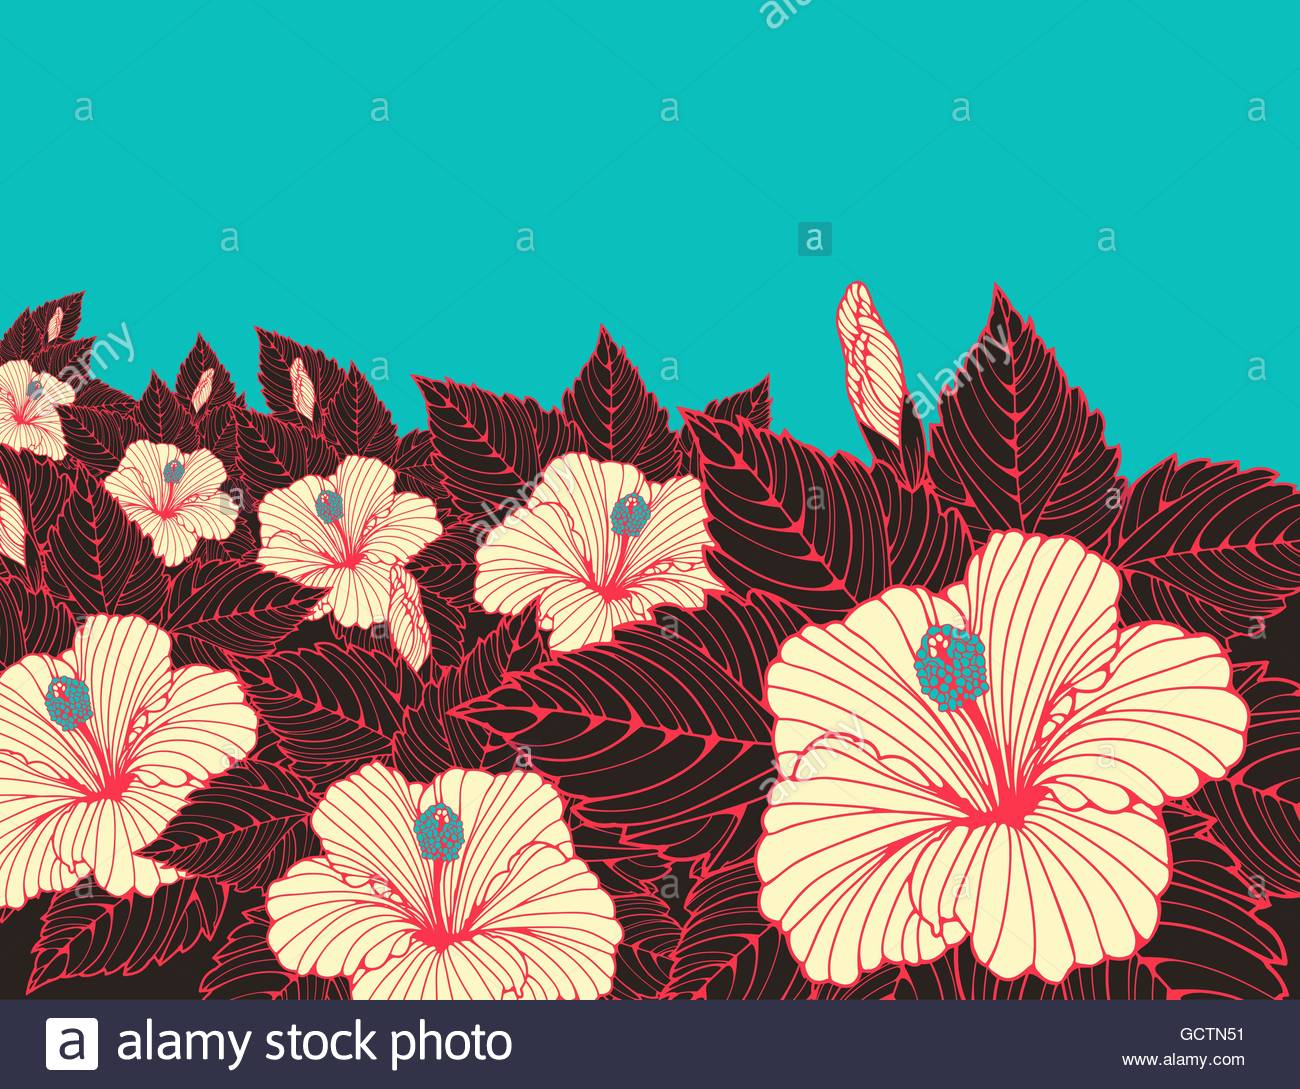 a wallpaper poster background with a field of hibiscus flowers in